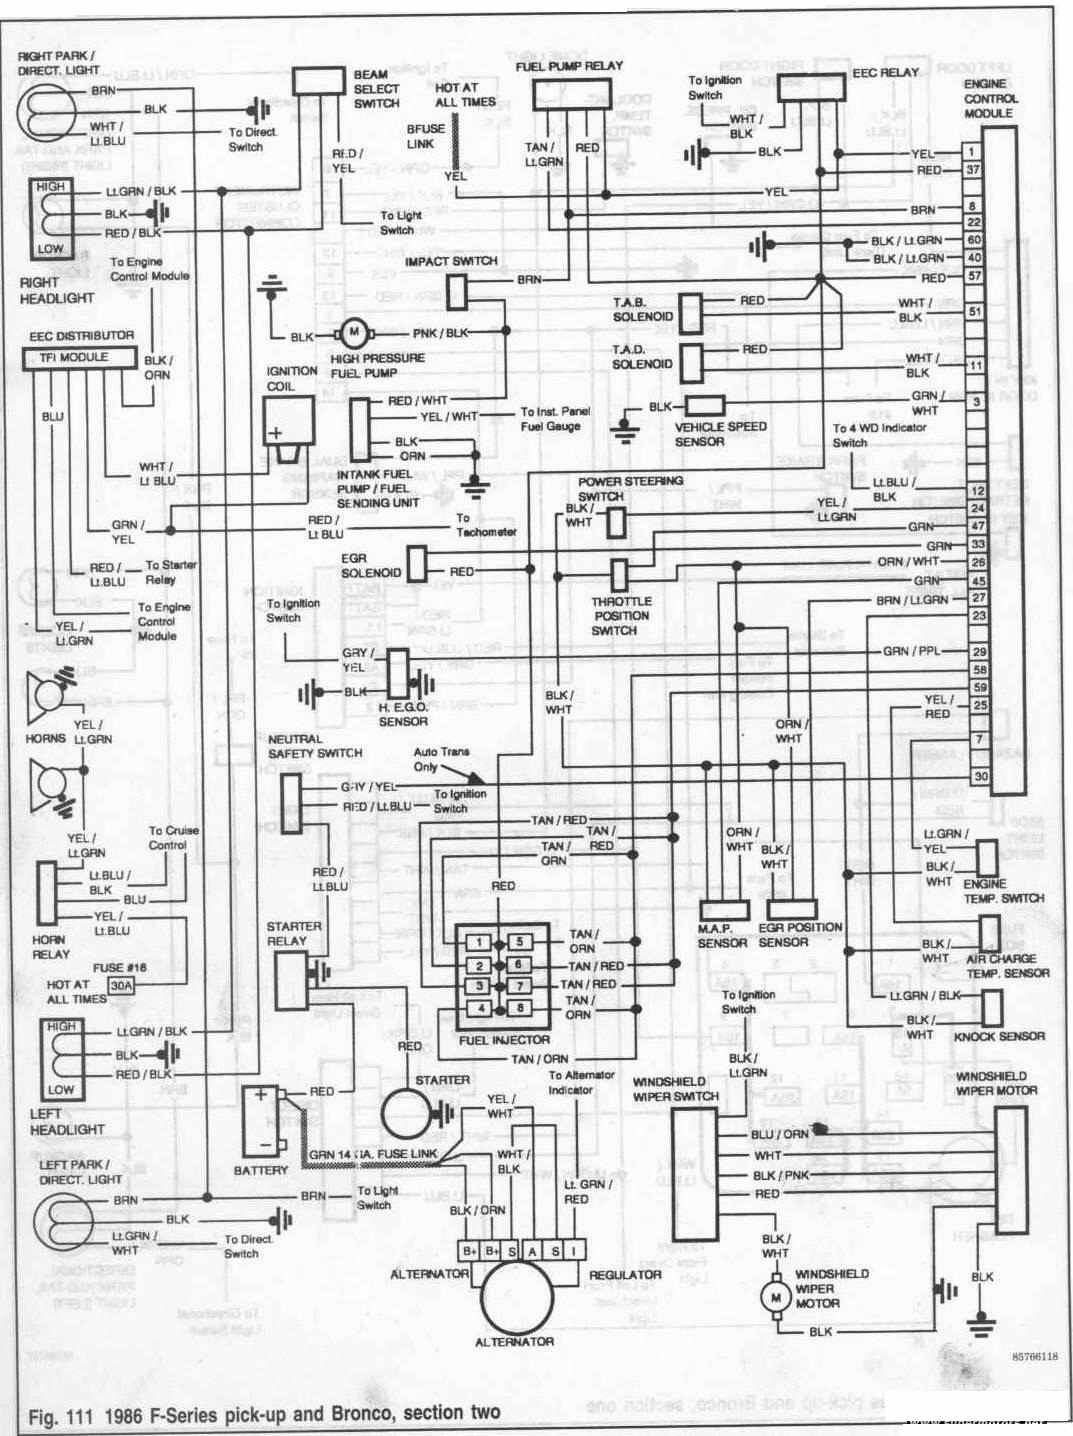 Wire Diagram For A Ford Eco Van Eec 35 Wiring Images 69 Bronco And F Series Pickup 1986 Engine Control